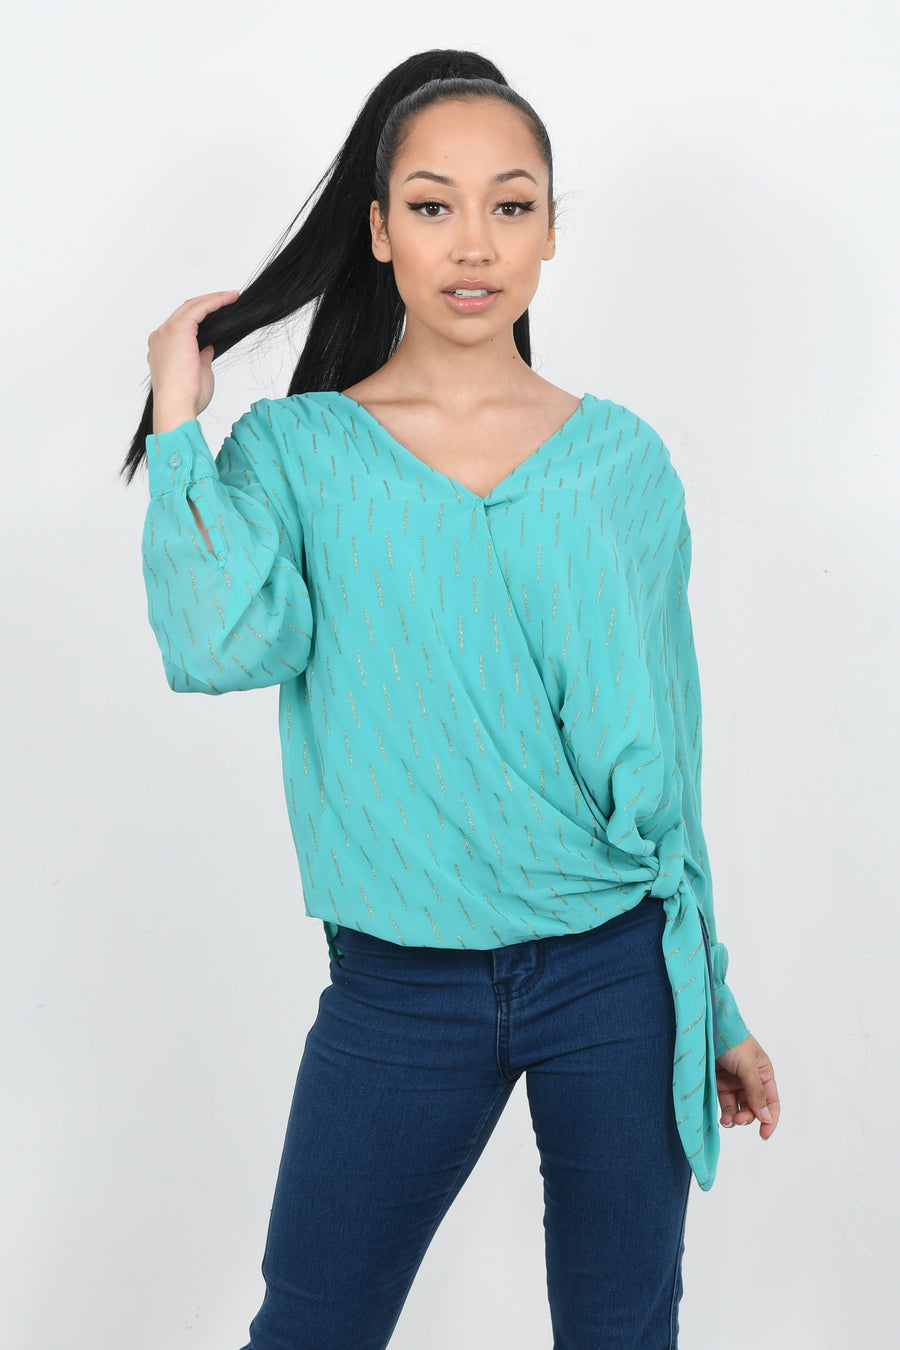 CROSS OVER CHIFFON TOP WITH GLITZY PRINT